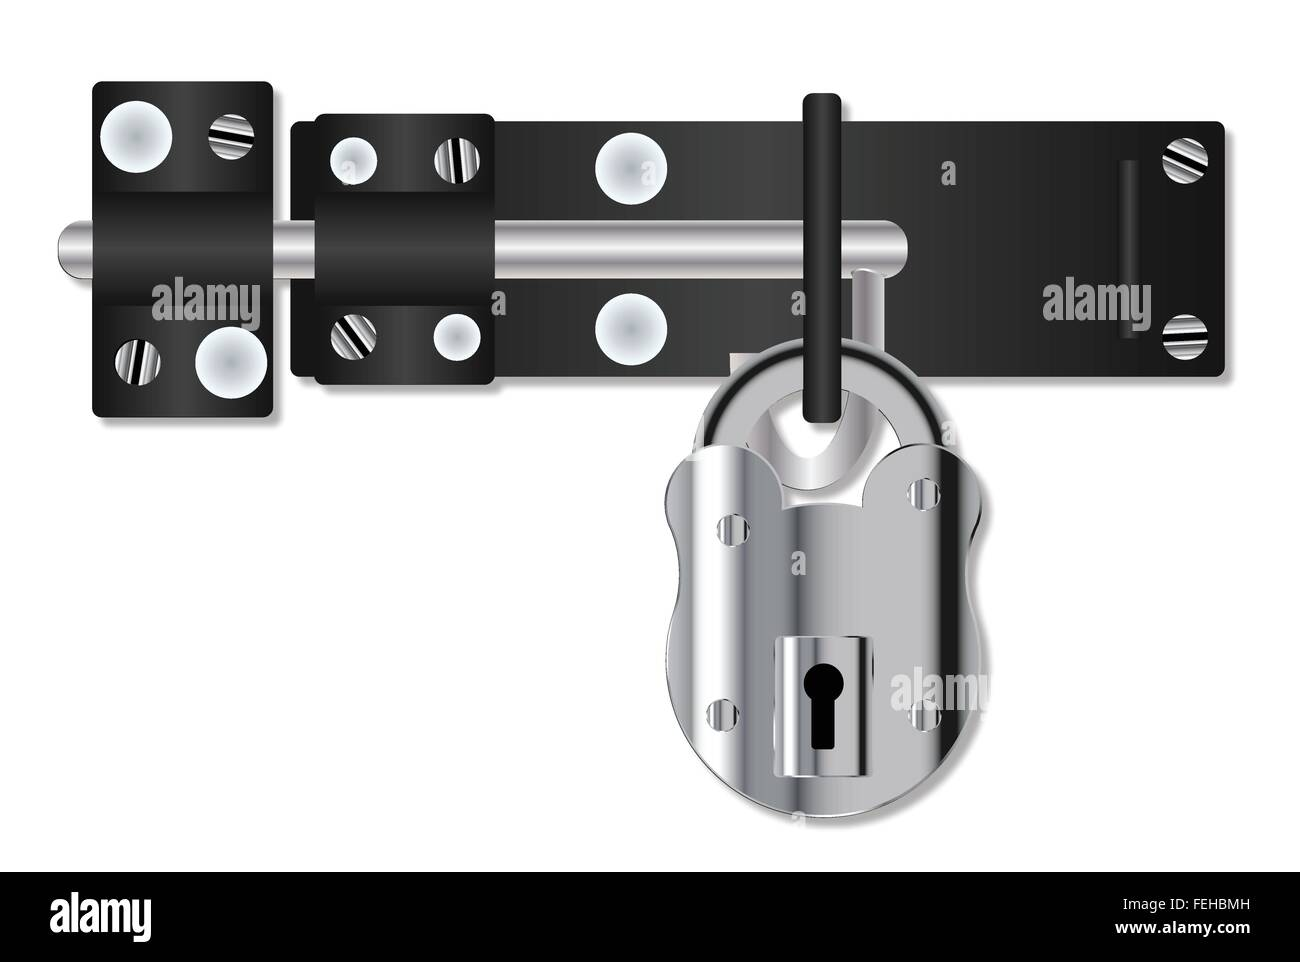 A hasp and staple door bolt and padlock over a white background  sc 1 st  Alamy & A hasp and staple door bolt and padlock over a white background ...